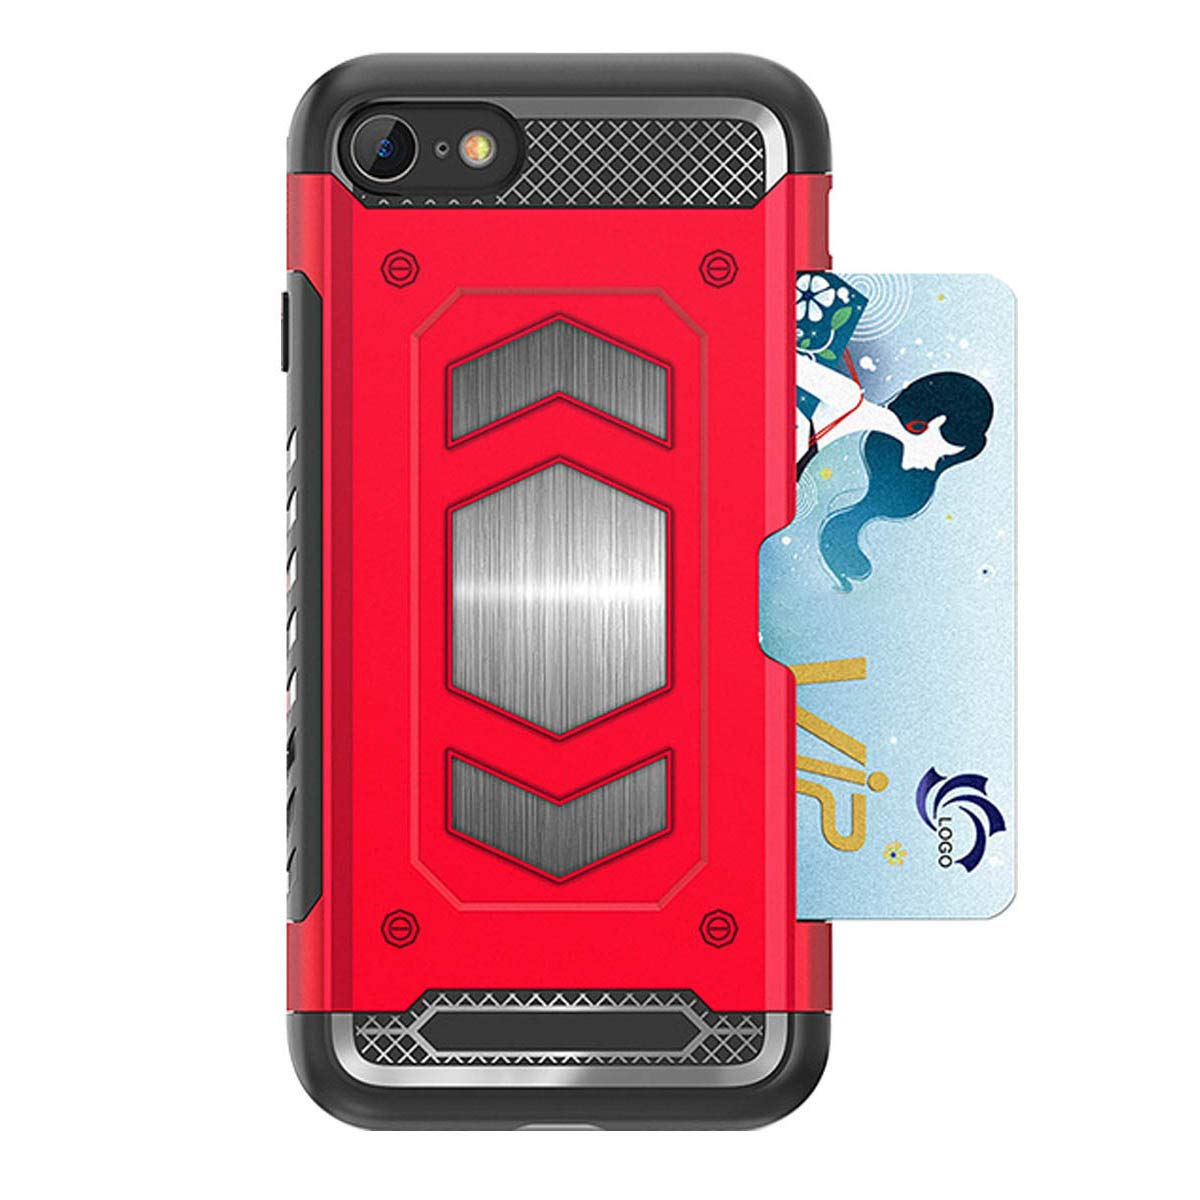 Heima Coque iPhone 8,Coque iPhone 7, iPhone 7 8 Silicone Bumper Anti-Choc de Protection Housse avec Carte Fente & Intégré Plaque en Magnétique Métal Case Etui Coque pour iPhone 7/8 (HY Série-Rouge)